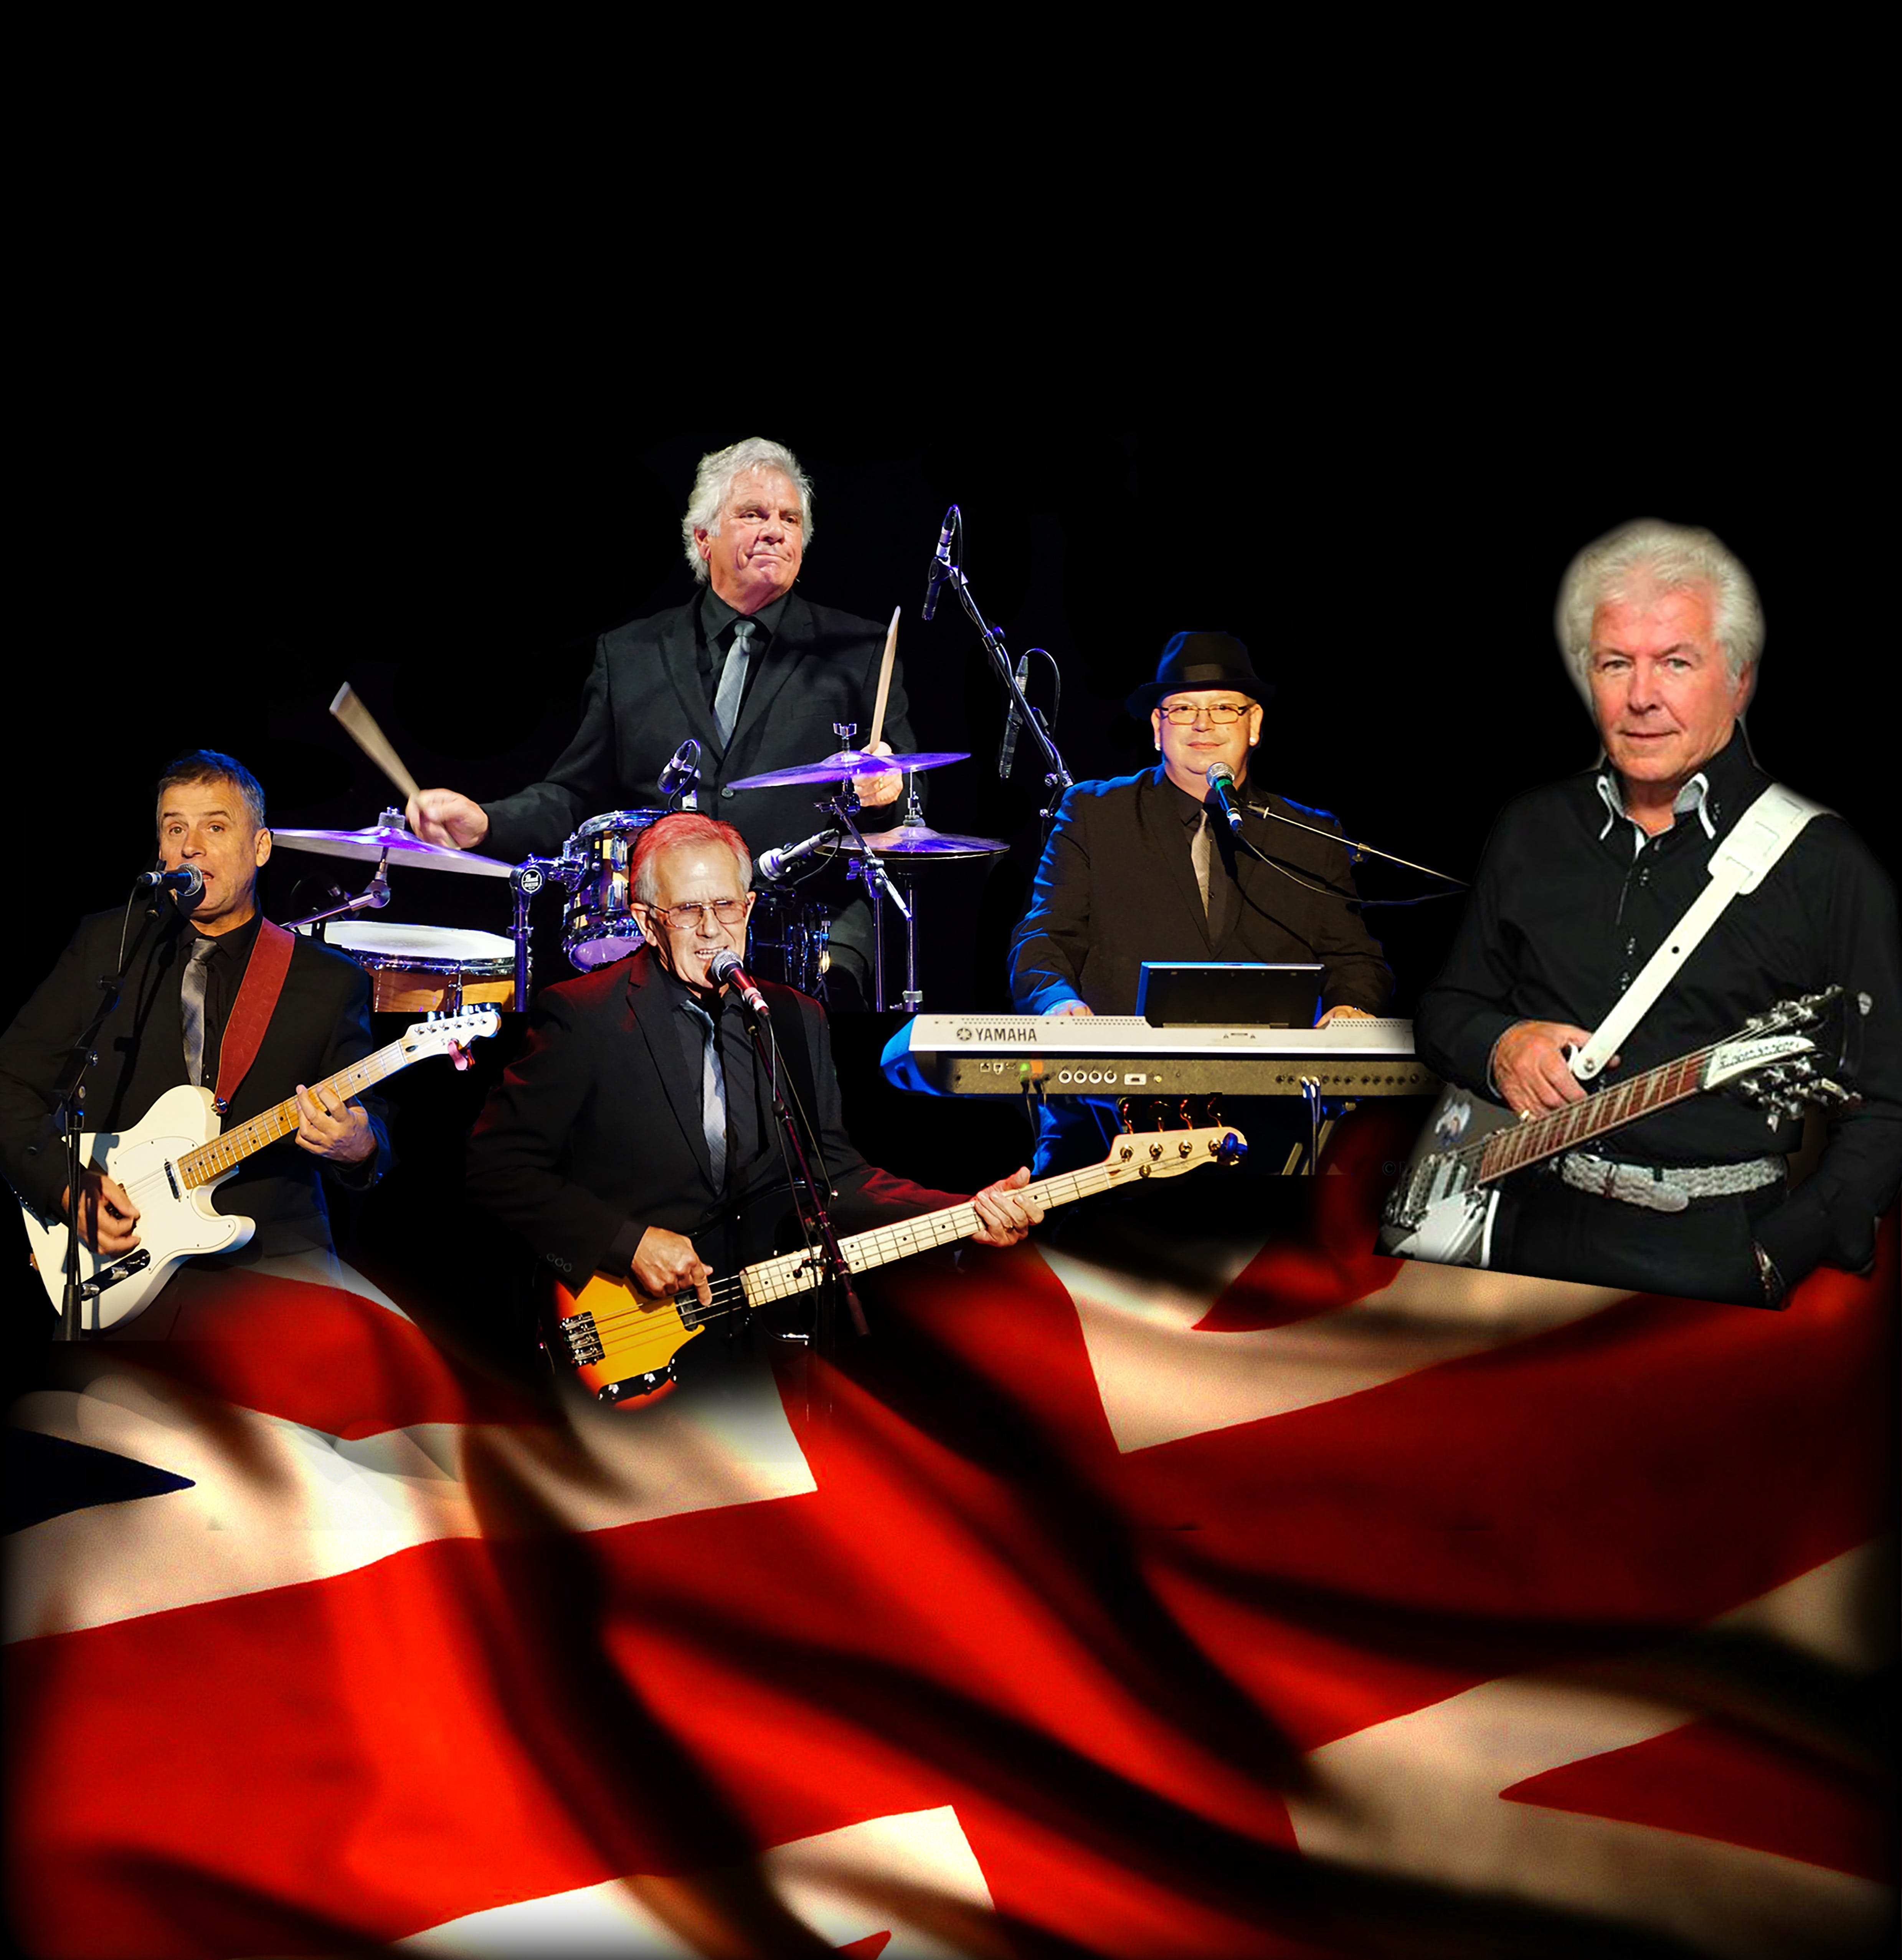 Herman's Hermits with Special Guest Mike Pender - The Six O'Clock Hop - Accommodation Australia